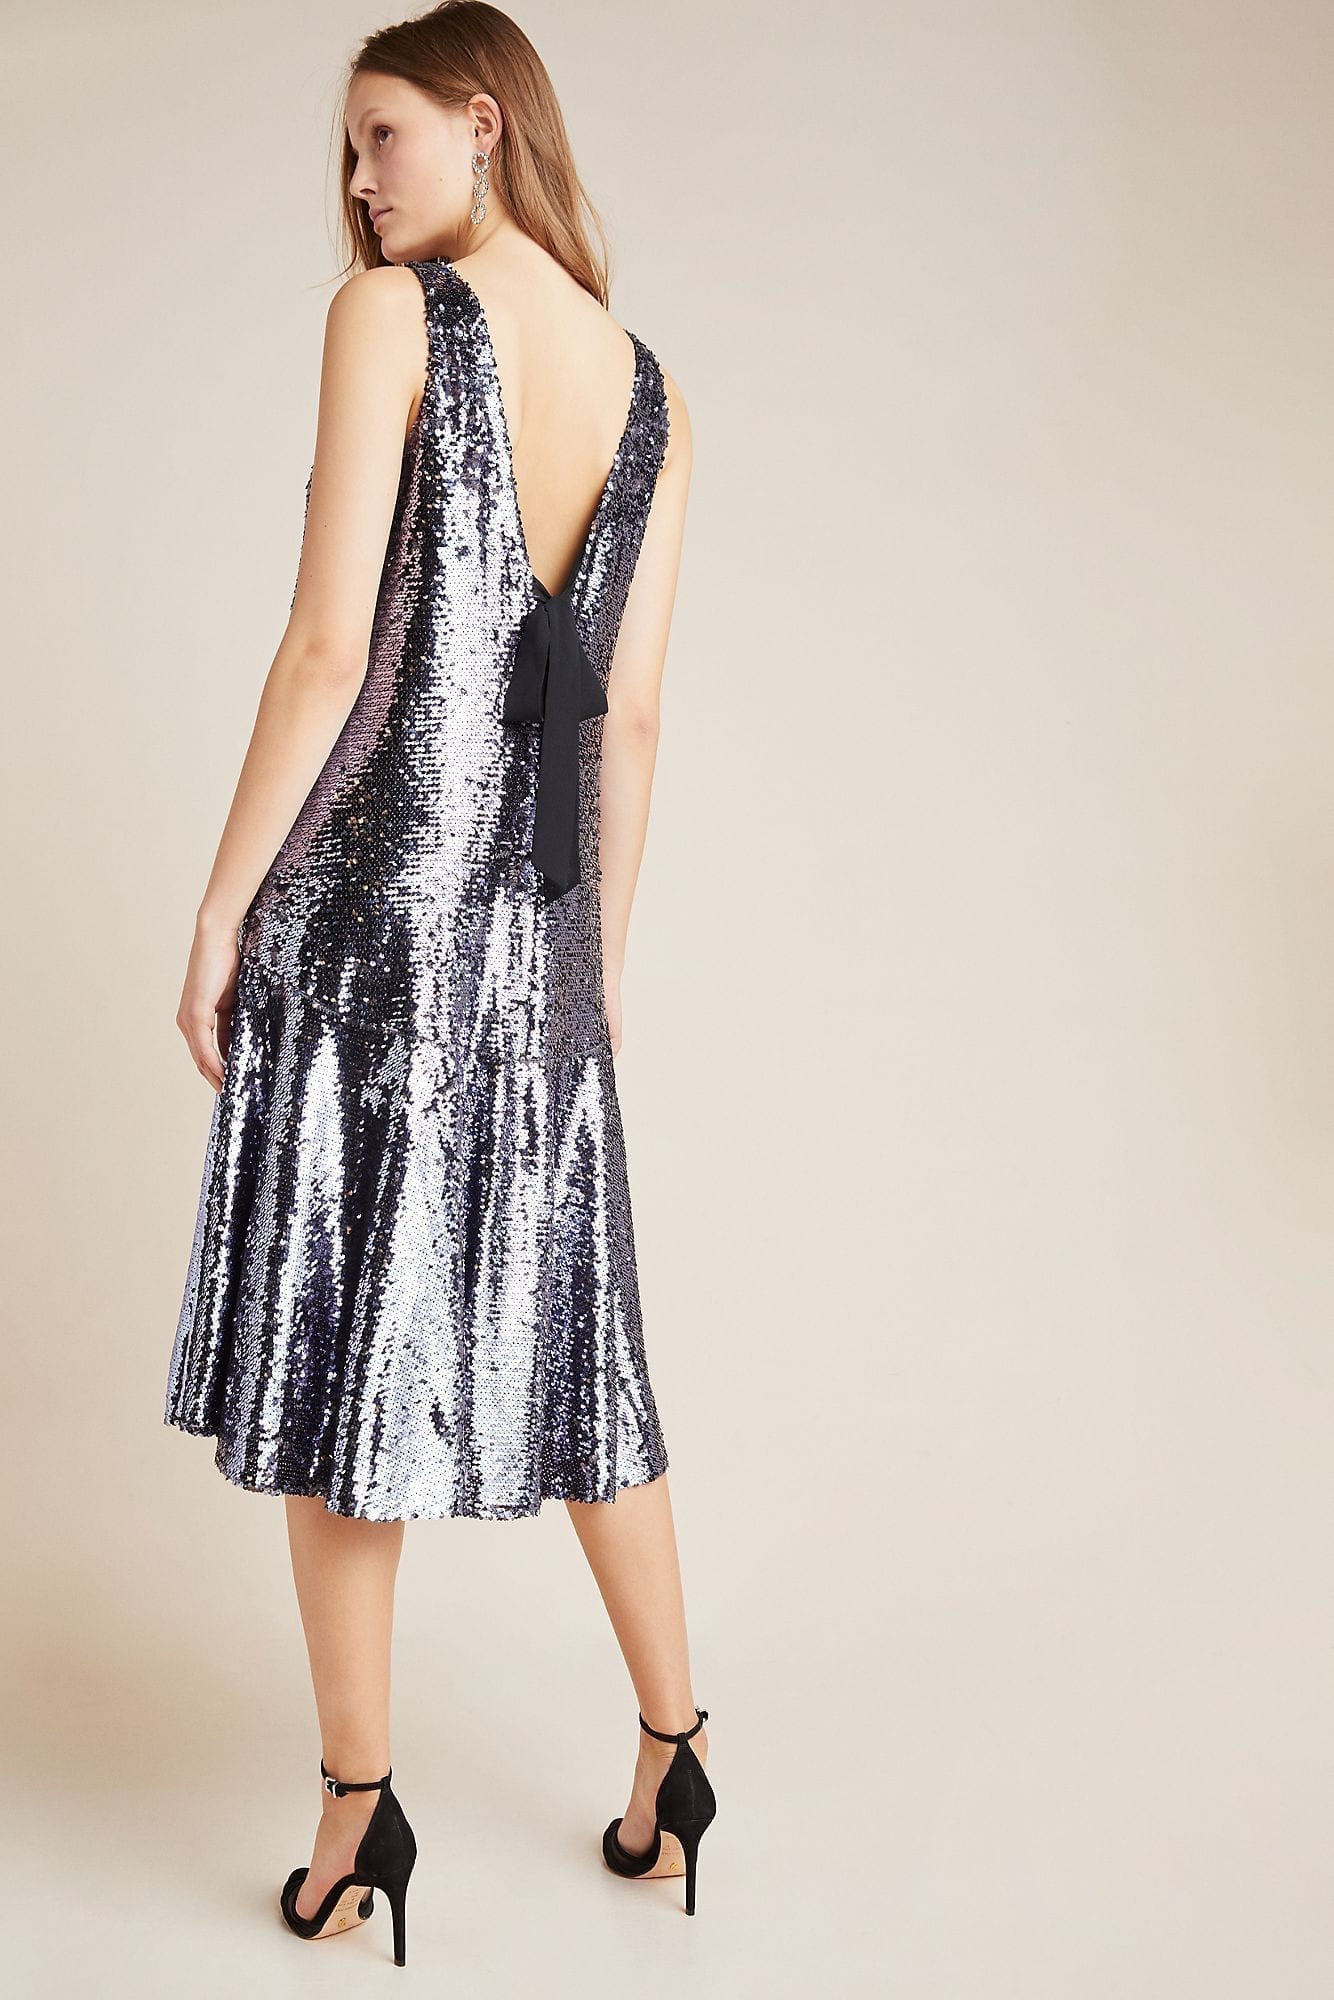 SUNDAY IN BROOKLYN Sybil Sequined Dress